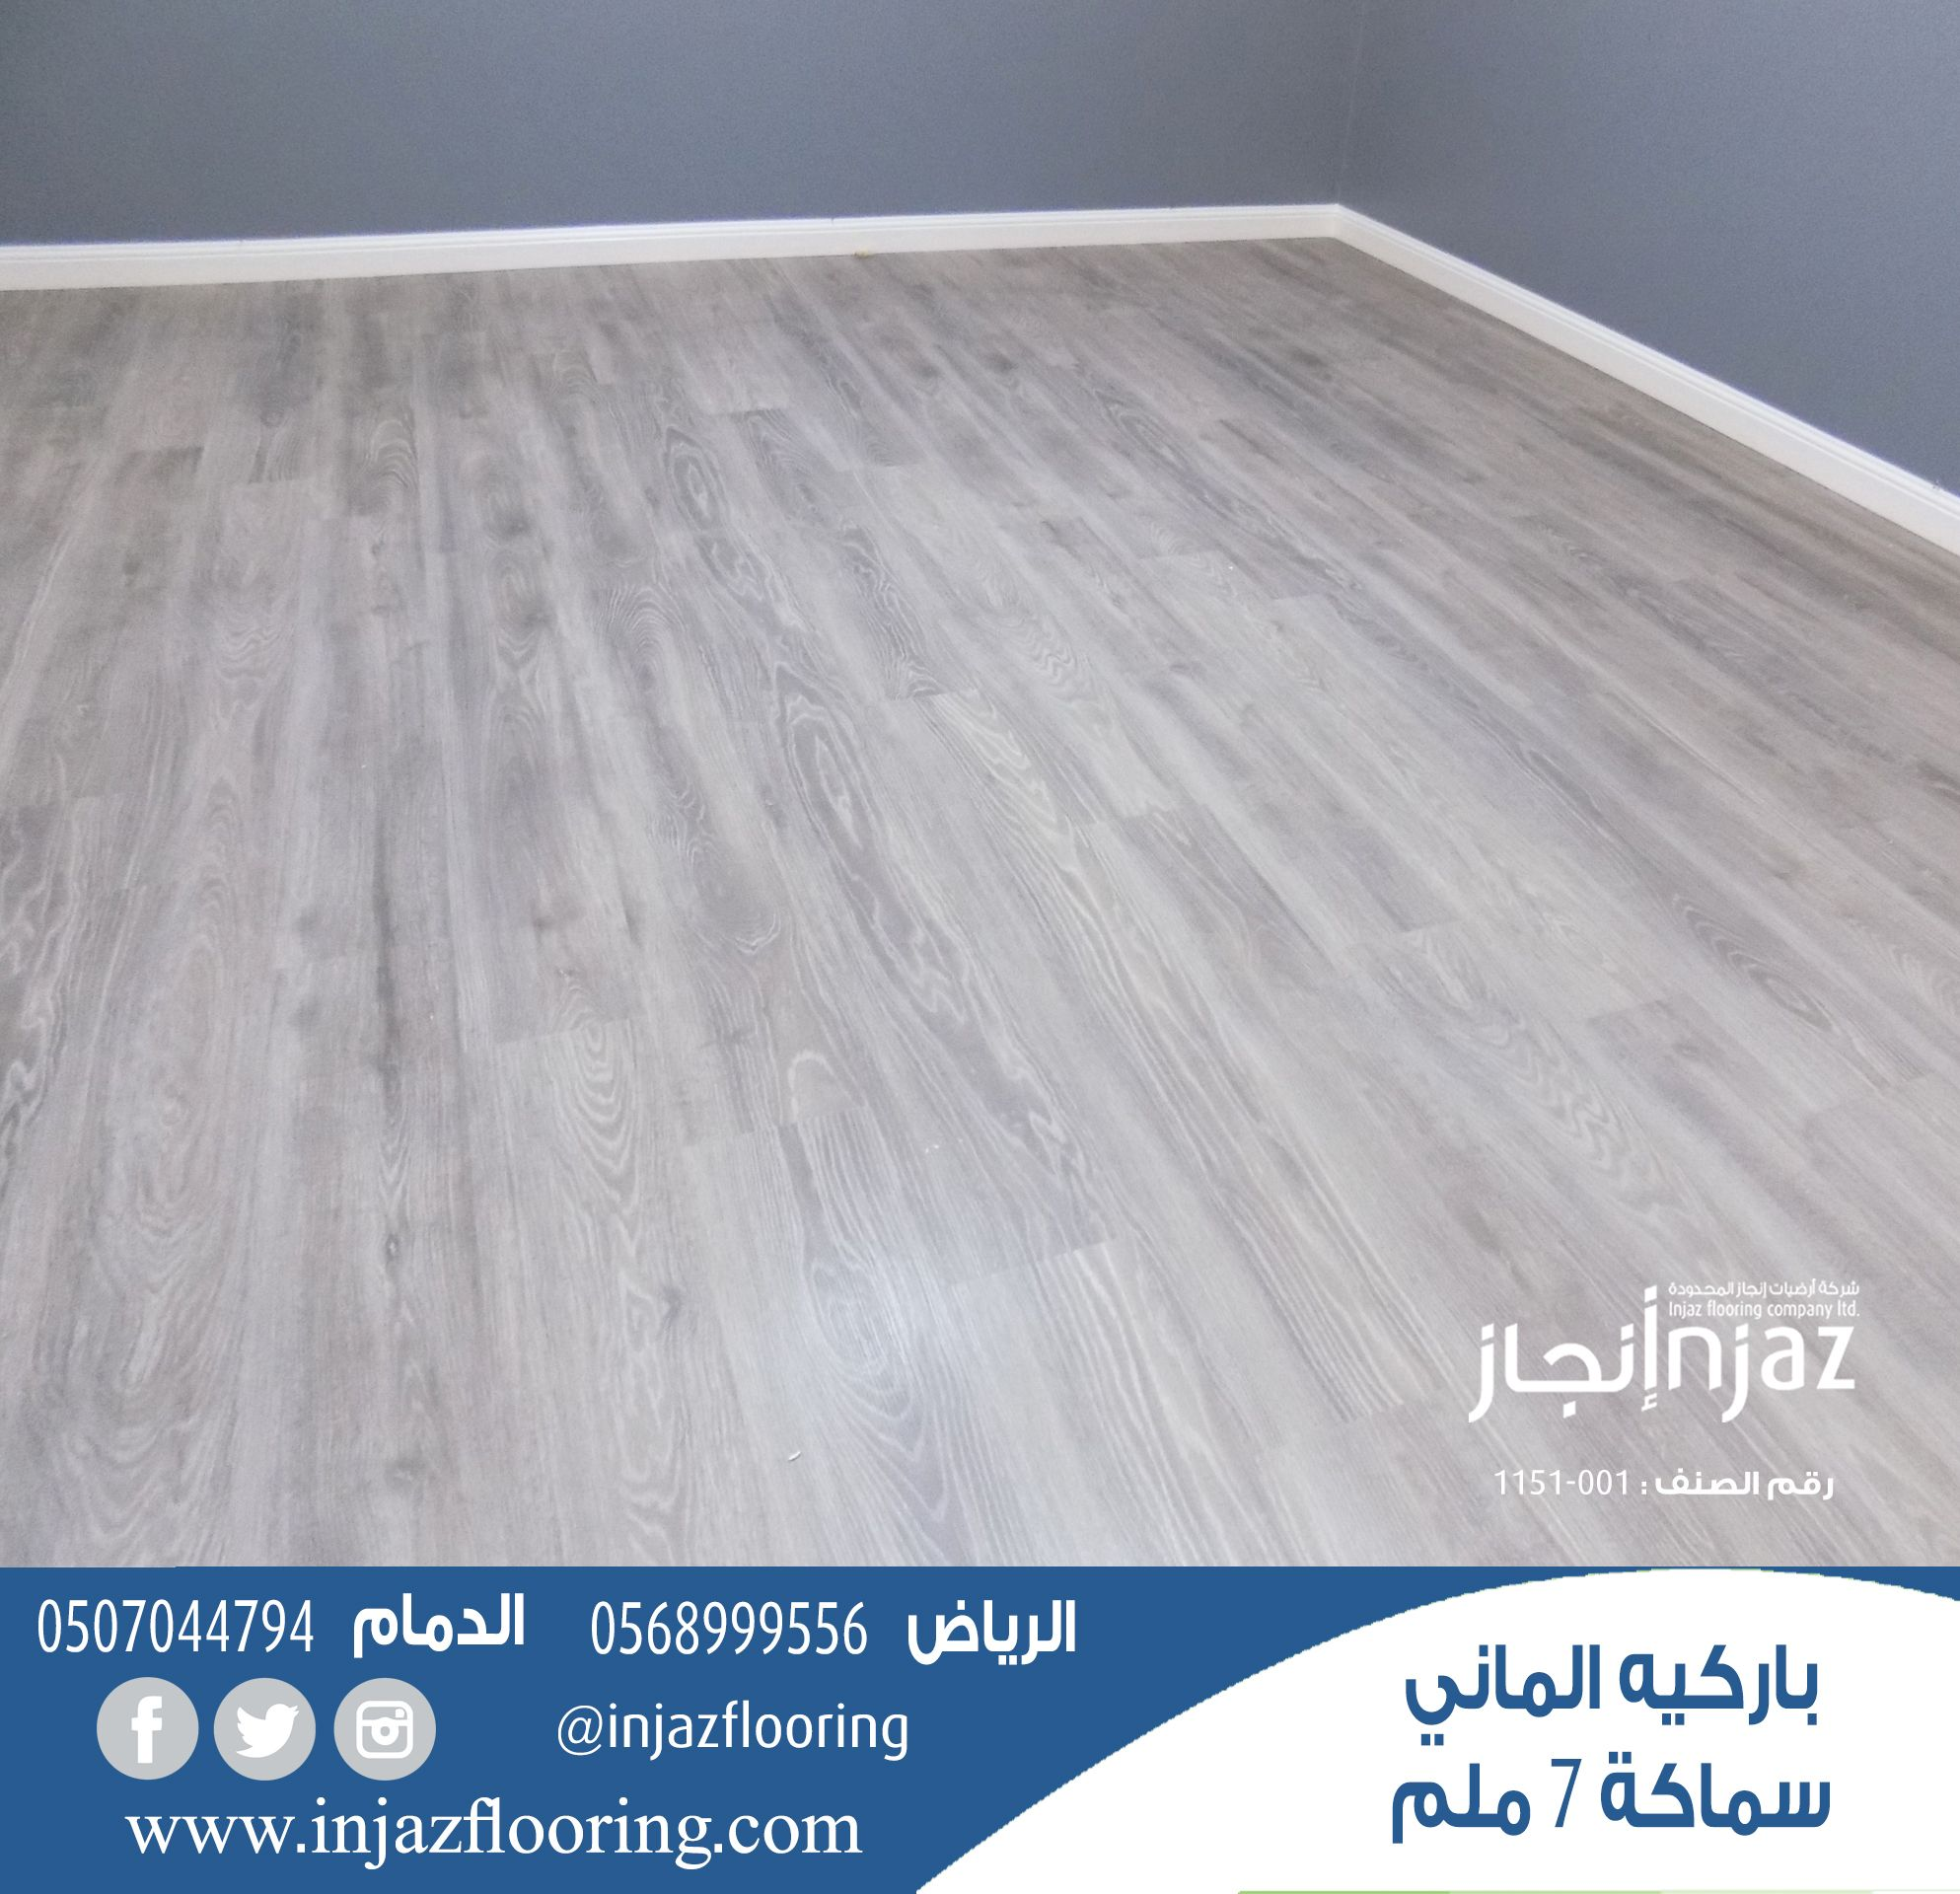 باركيه الماني Wood Laminate Flooring Floor Design Wood Laminate